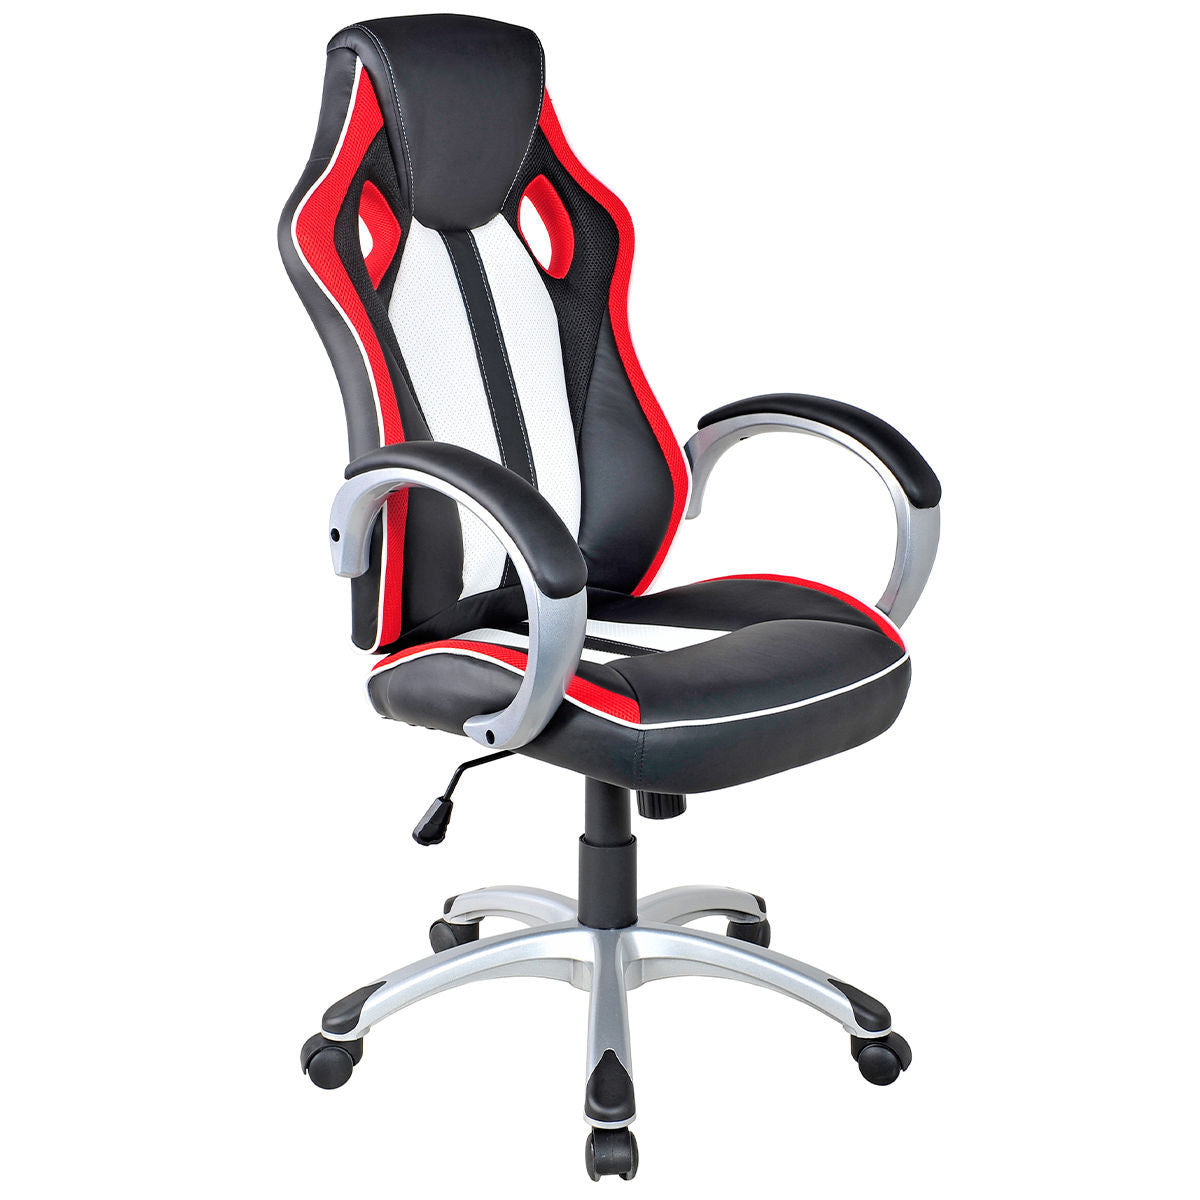 Tornado Racing Cheap Gaming Chair Racer Gaming Chairs